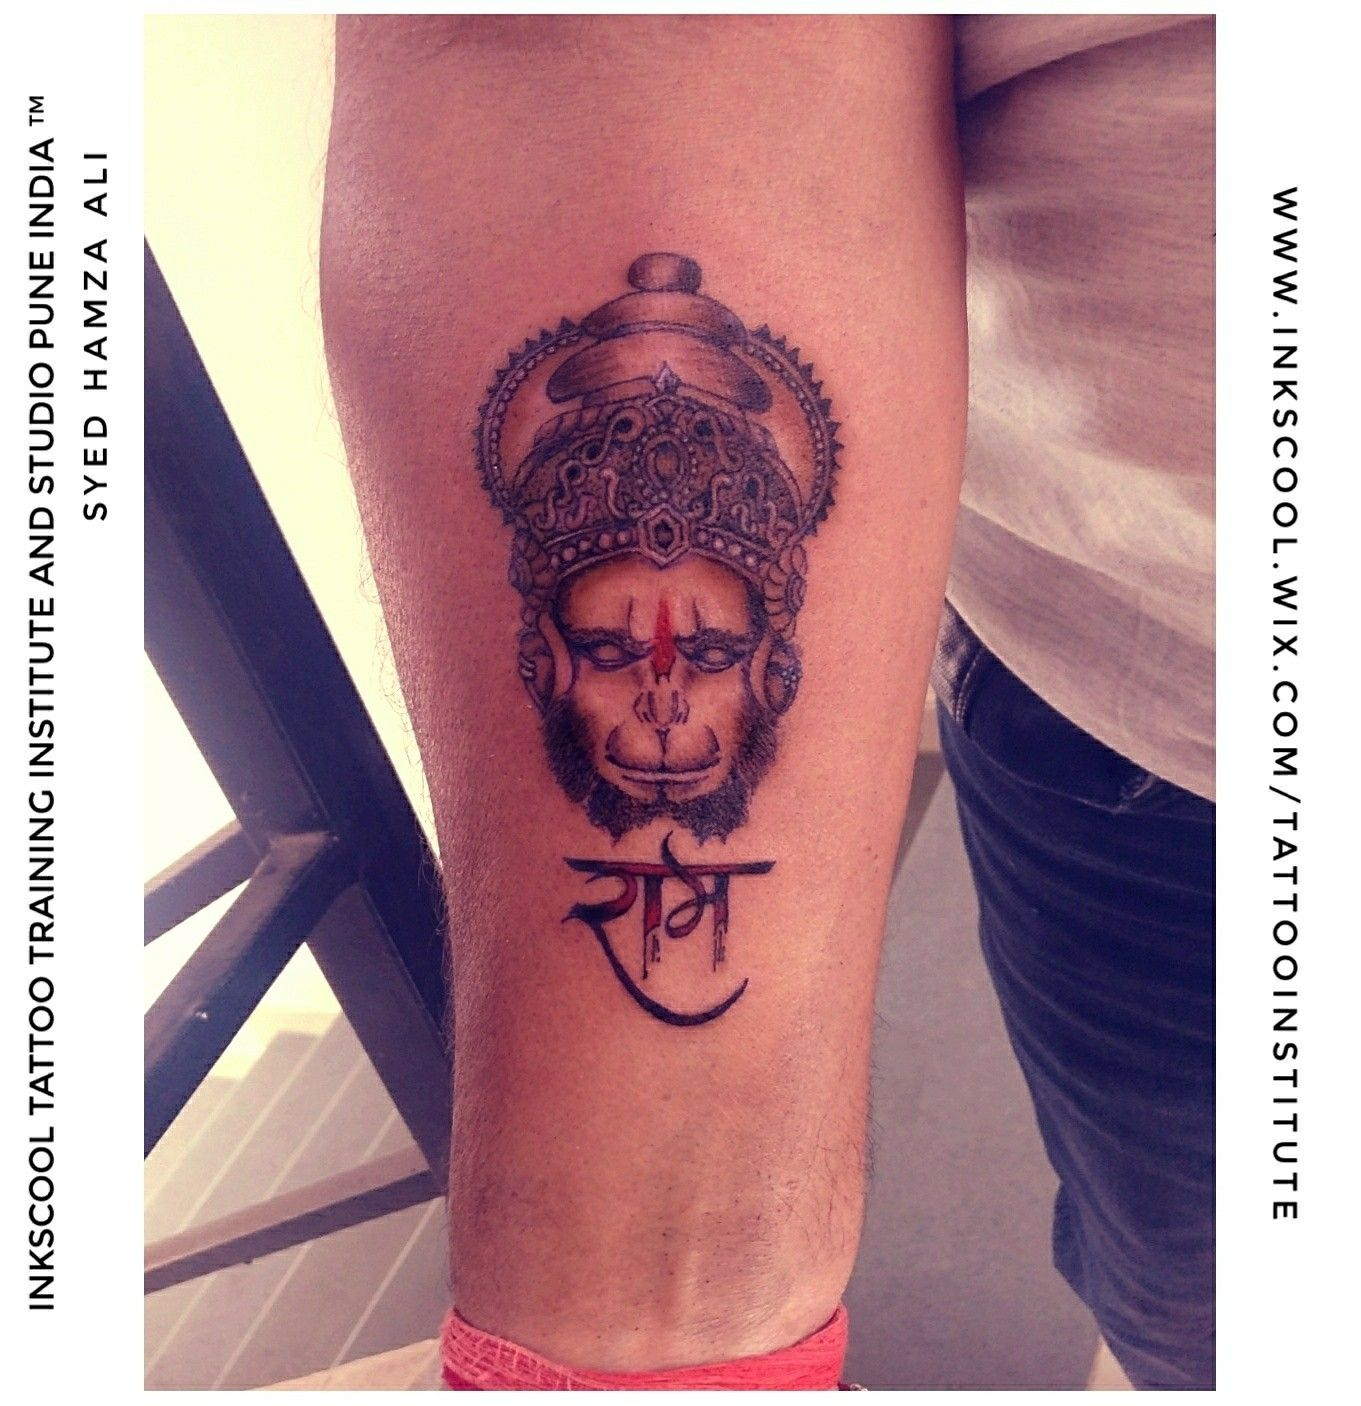 Hanuman tattoo design made by Tattoo Artist Syed Hamza Ali